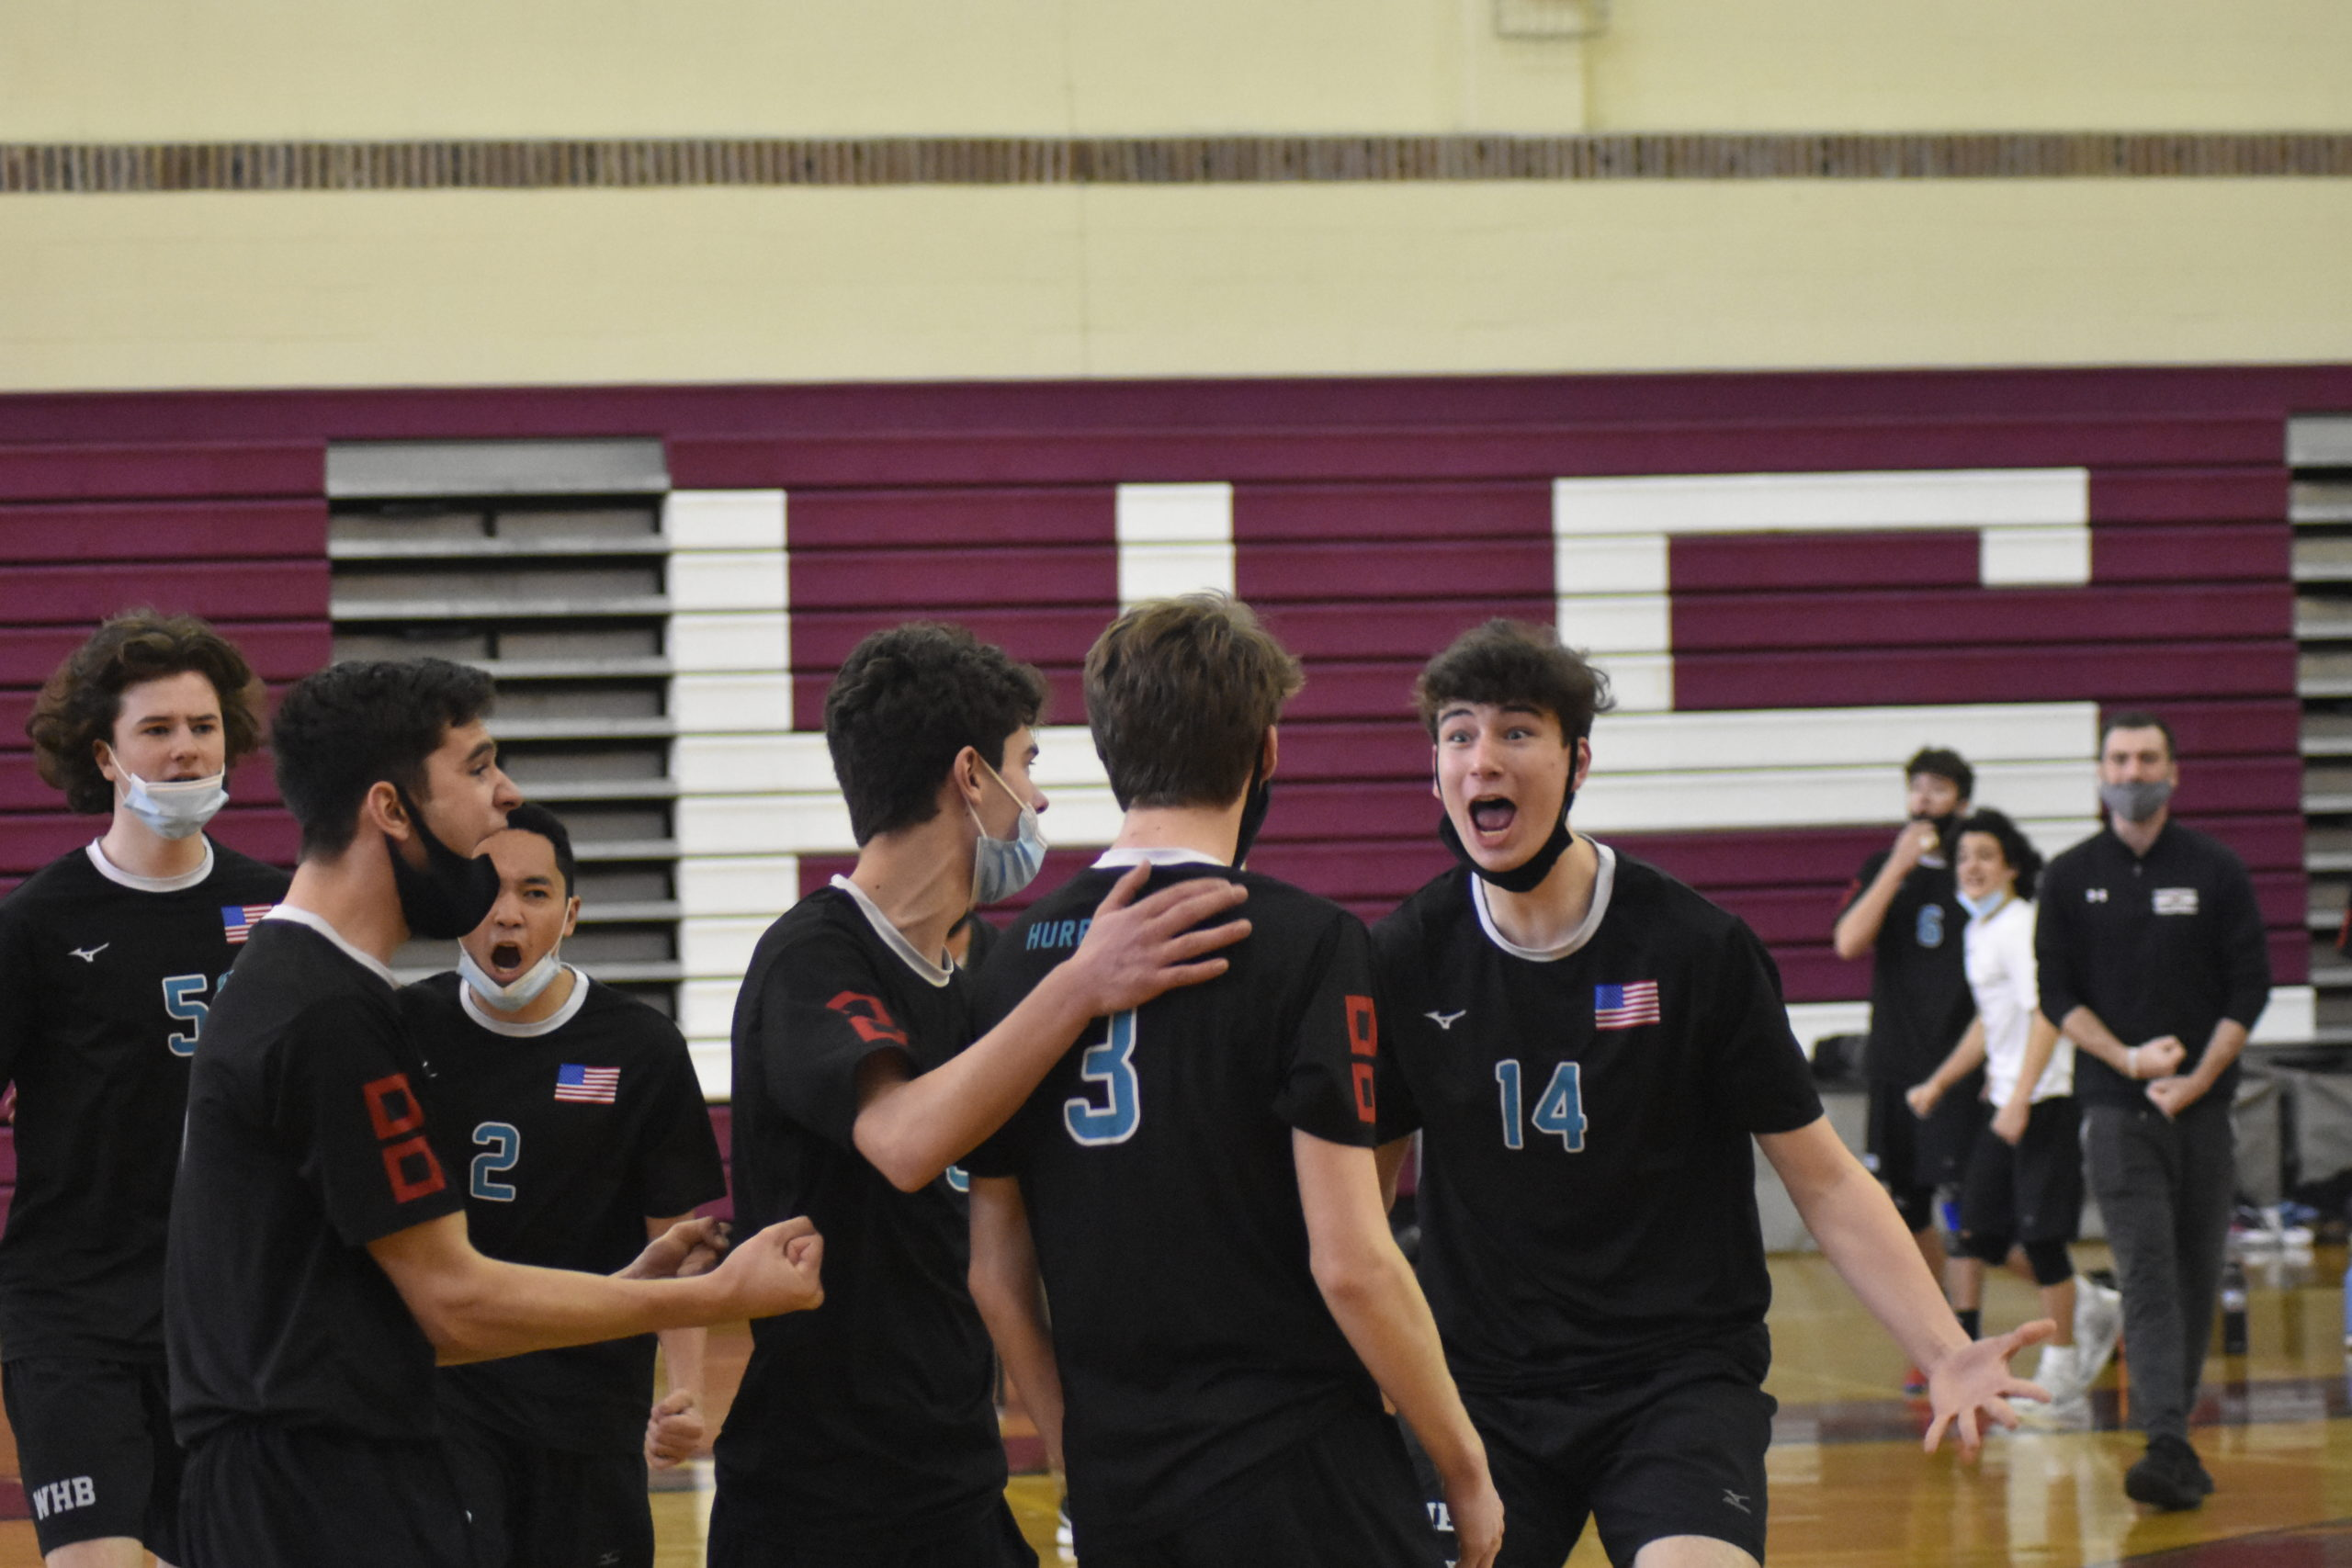 Daniel Haber and the Hurricanes are fired up after winning a tight first set, 28-26, over host Bay Shore. Westhampton Beach wound up taking the match, 3-2, on Thursday.